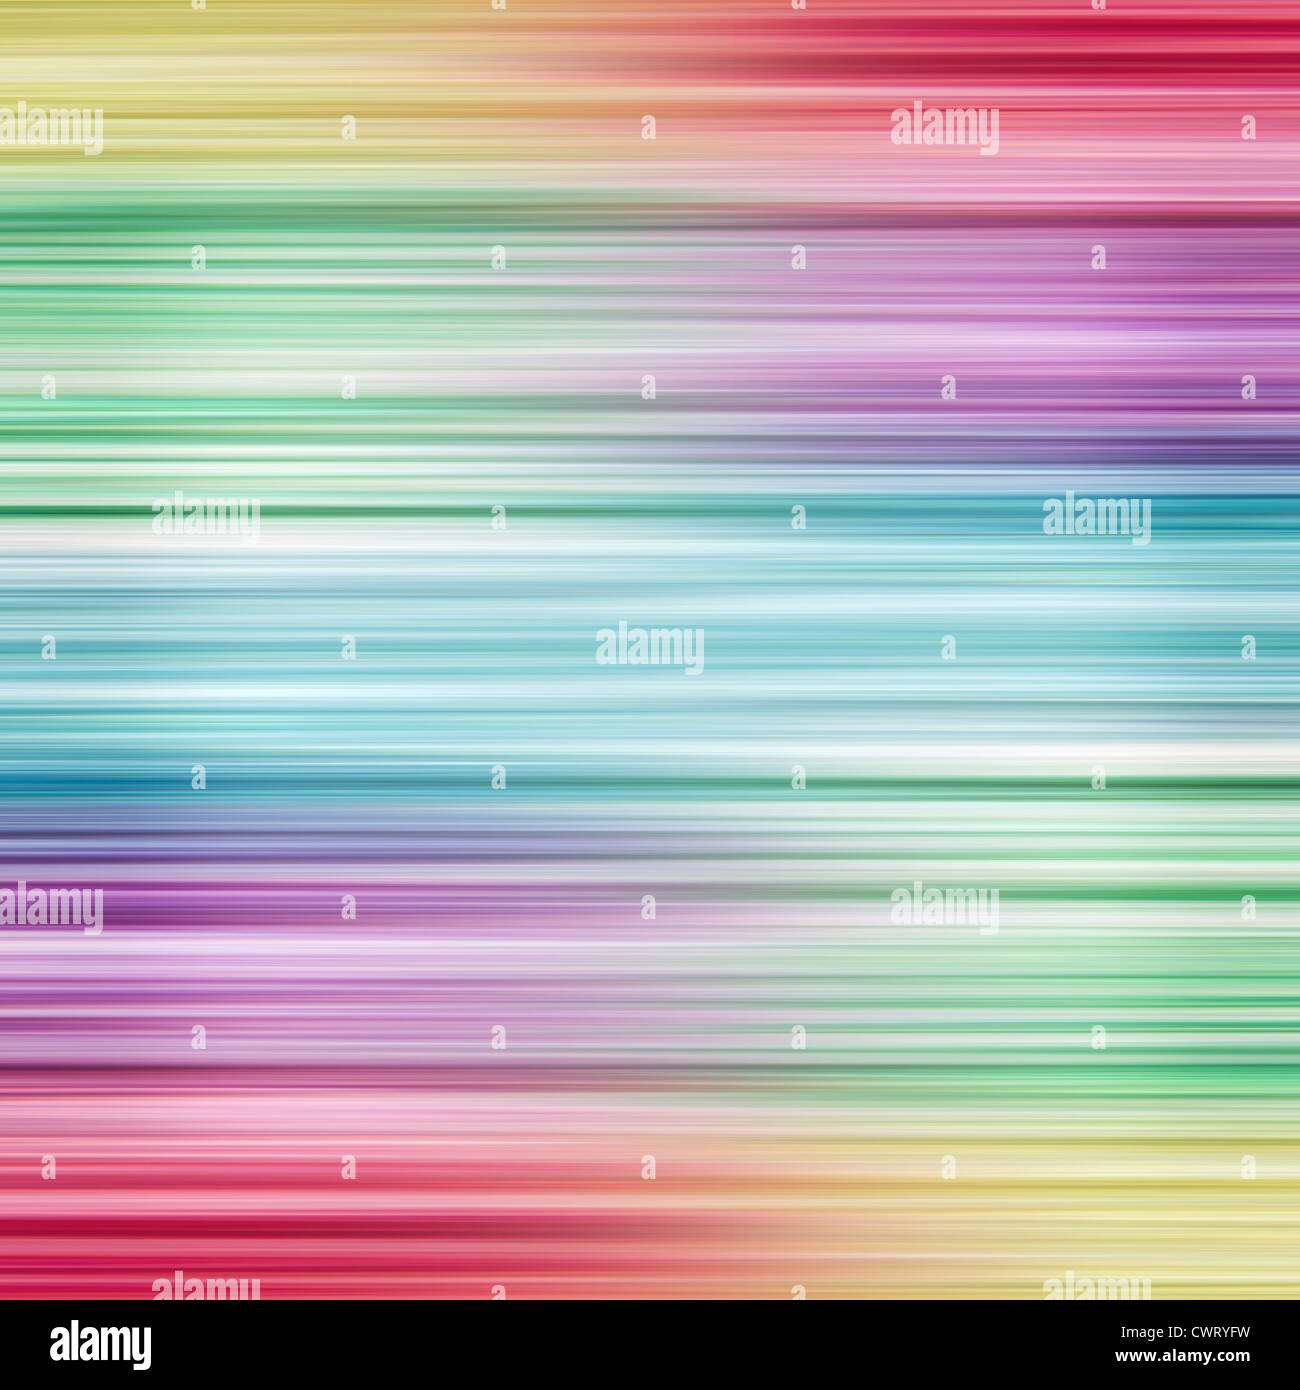 Colorful linear rainbow design background with copy space. - Stock Image